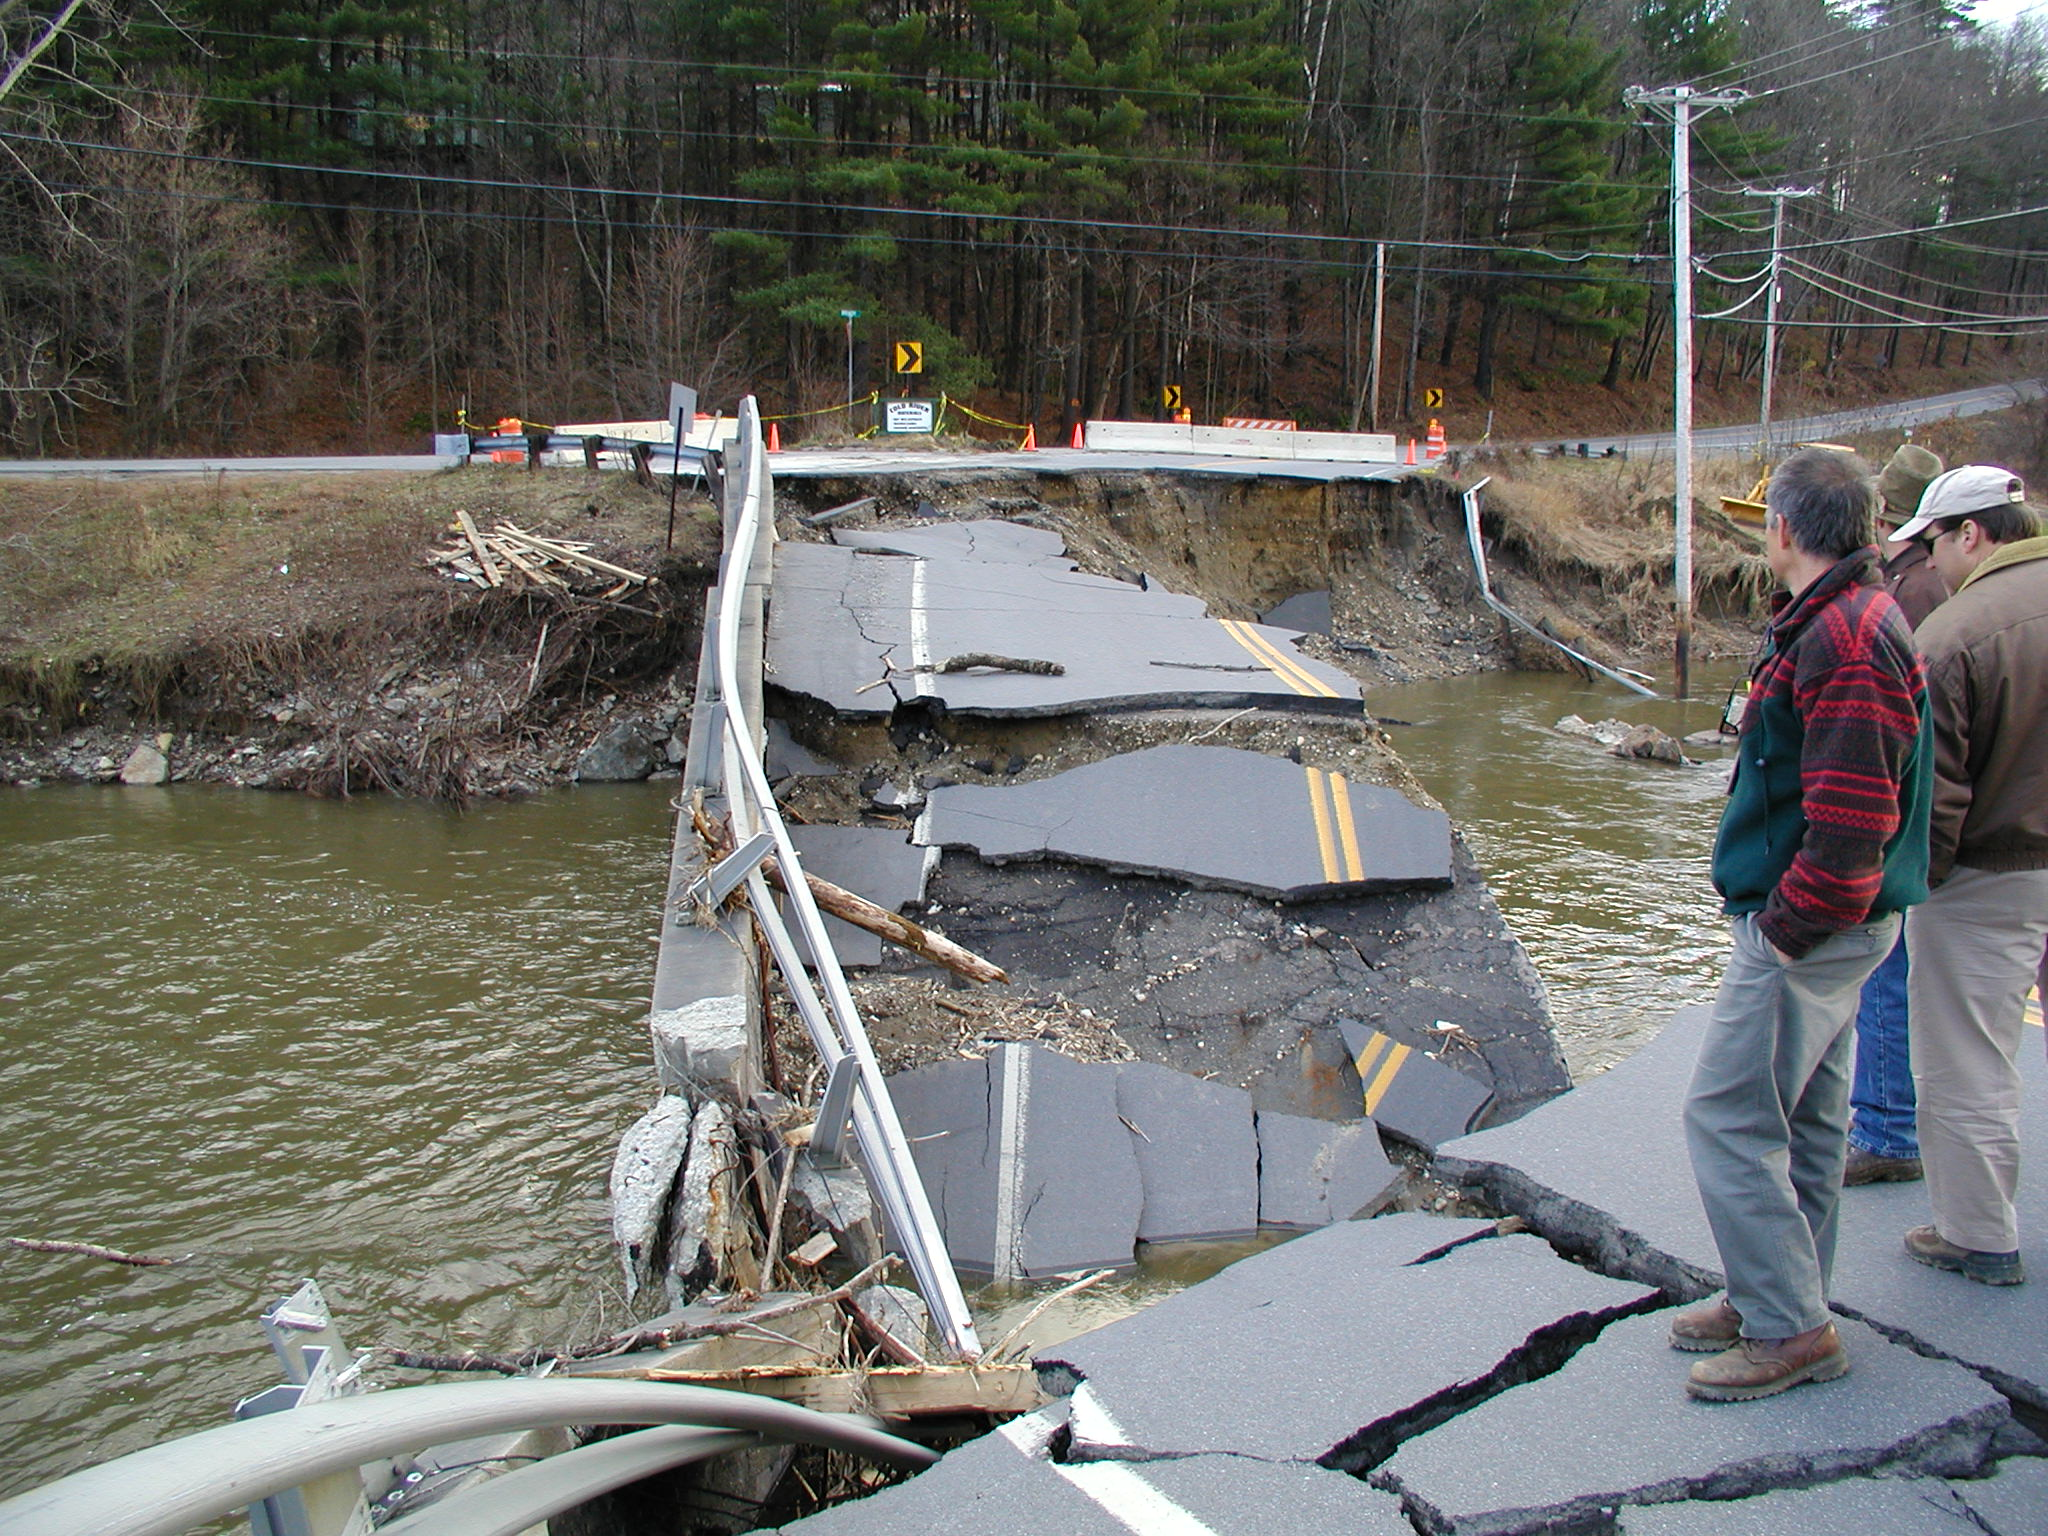 Bridge washout in Alstead, New Hampshire.